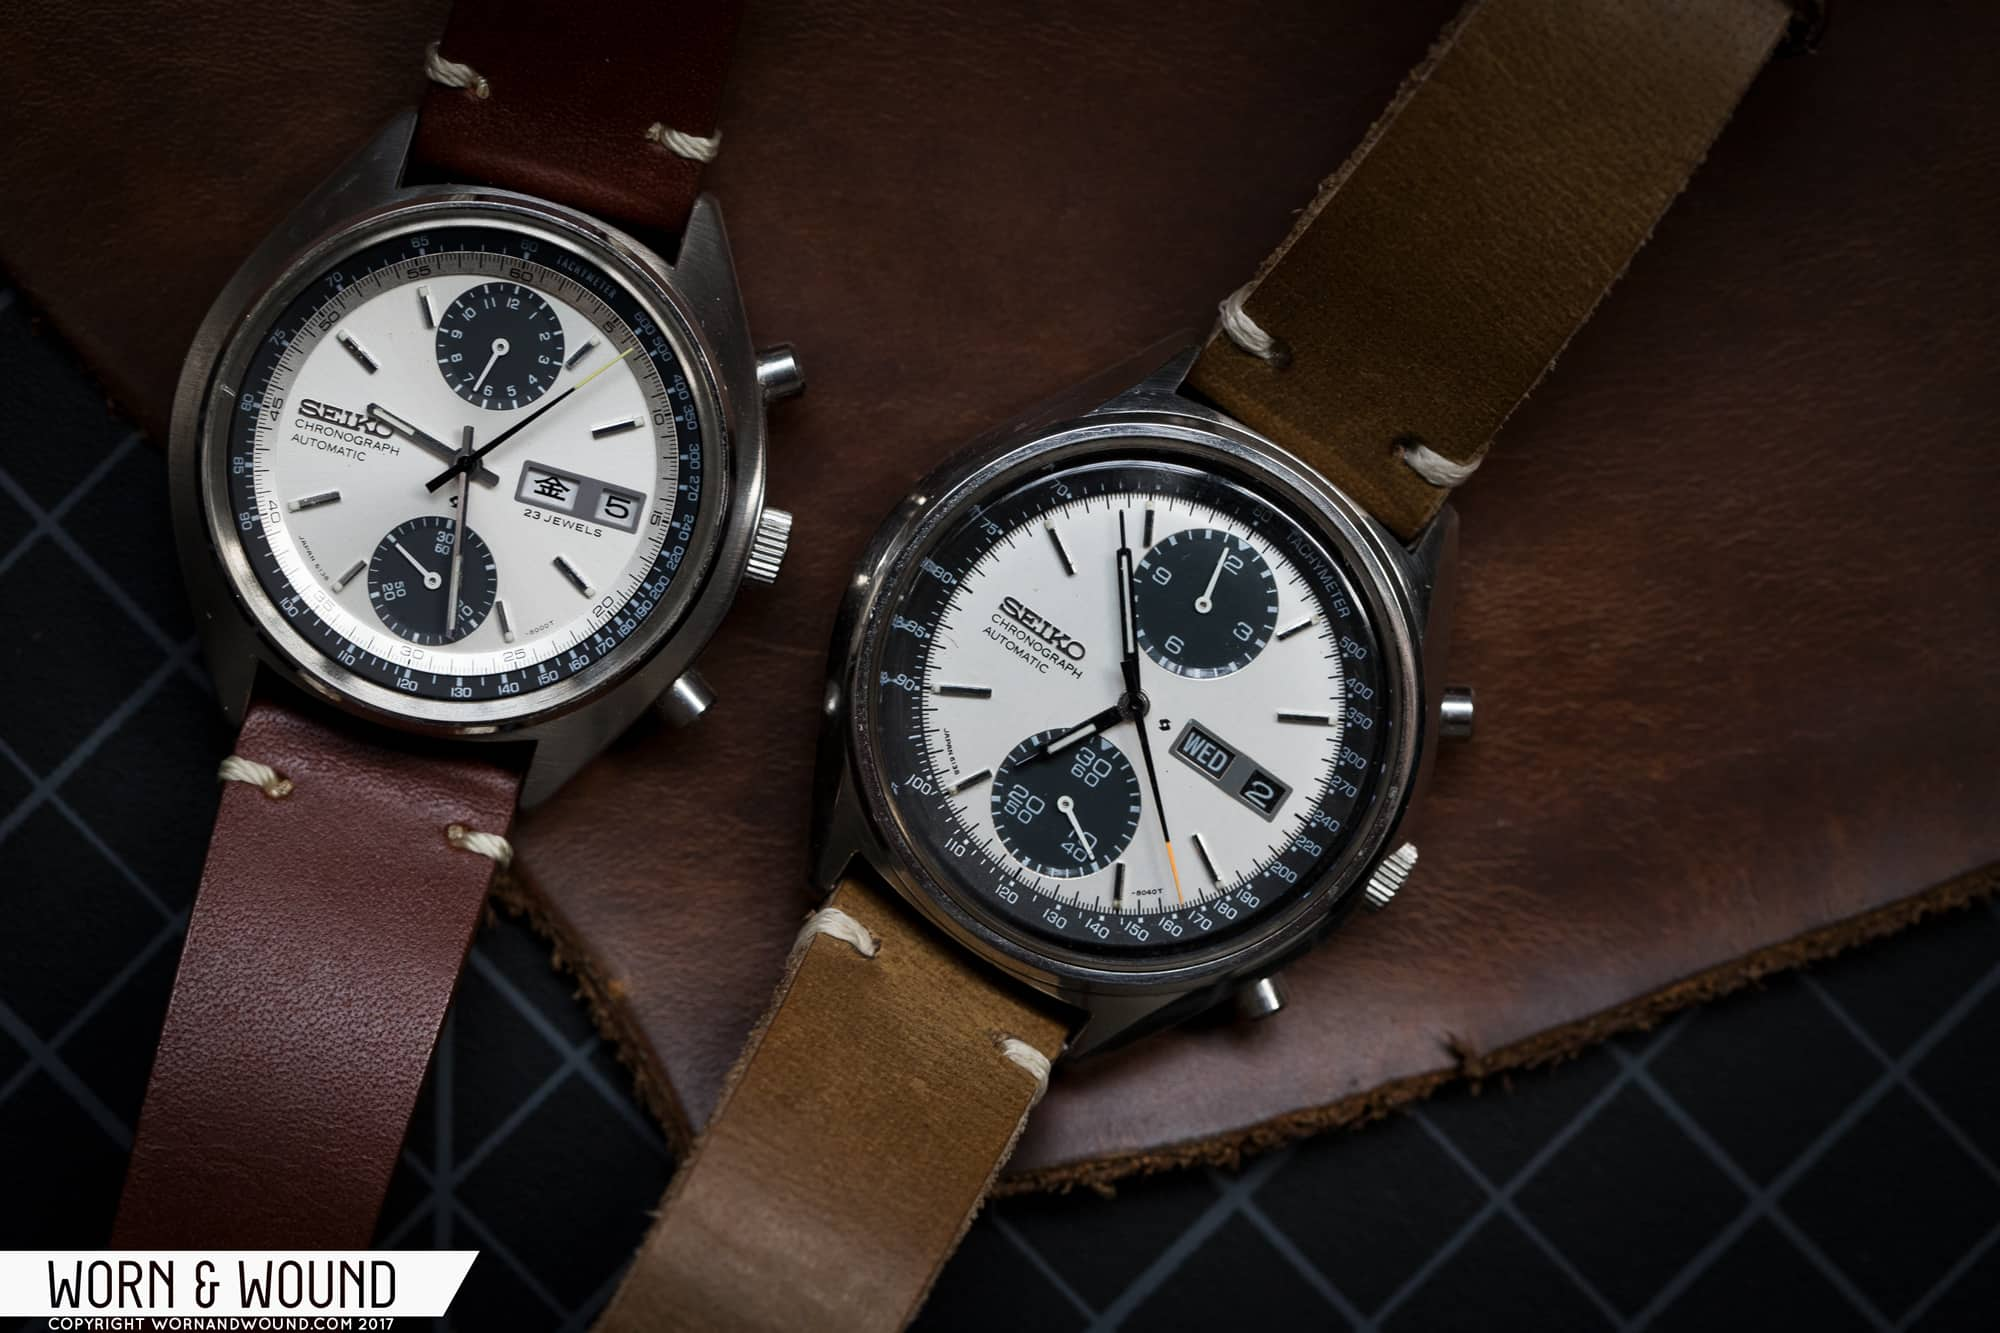 Chronograph Seiko My Watch Collecting Seiko Chronographs With Watchrecon S Sammy Sy